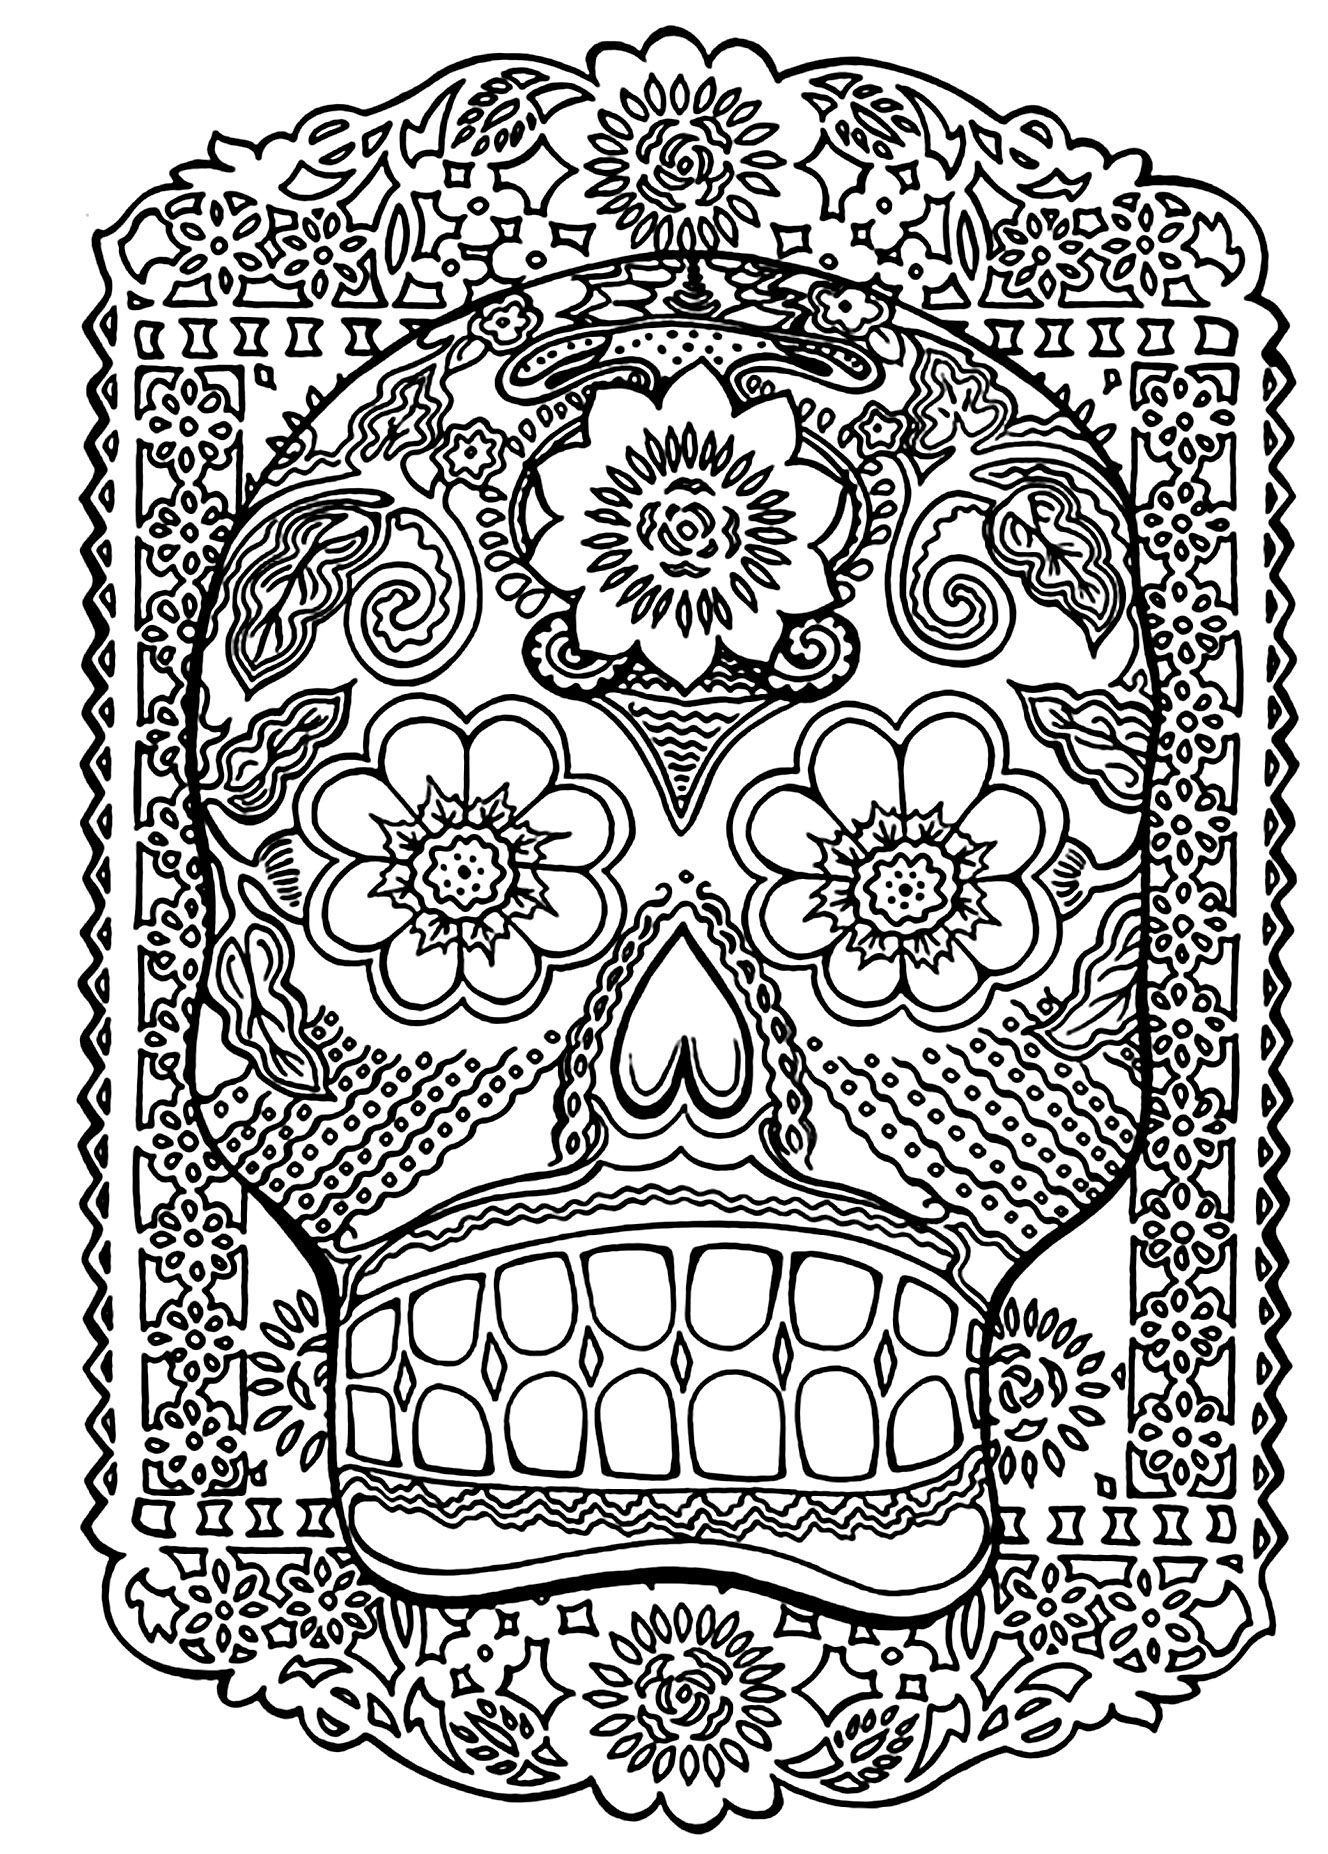 To Print This Free Coloring Page «coloring Skull Head Antistress